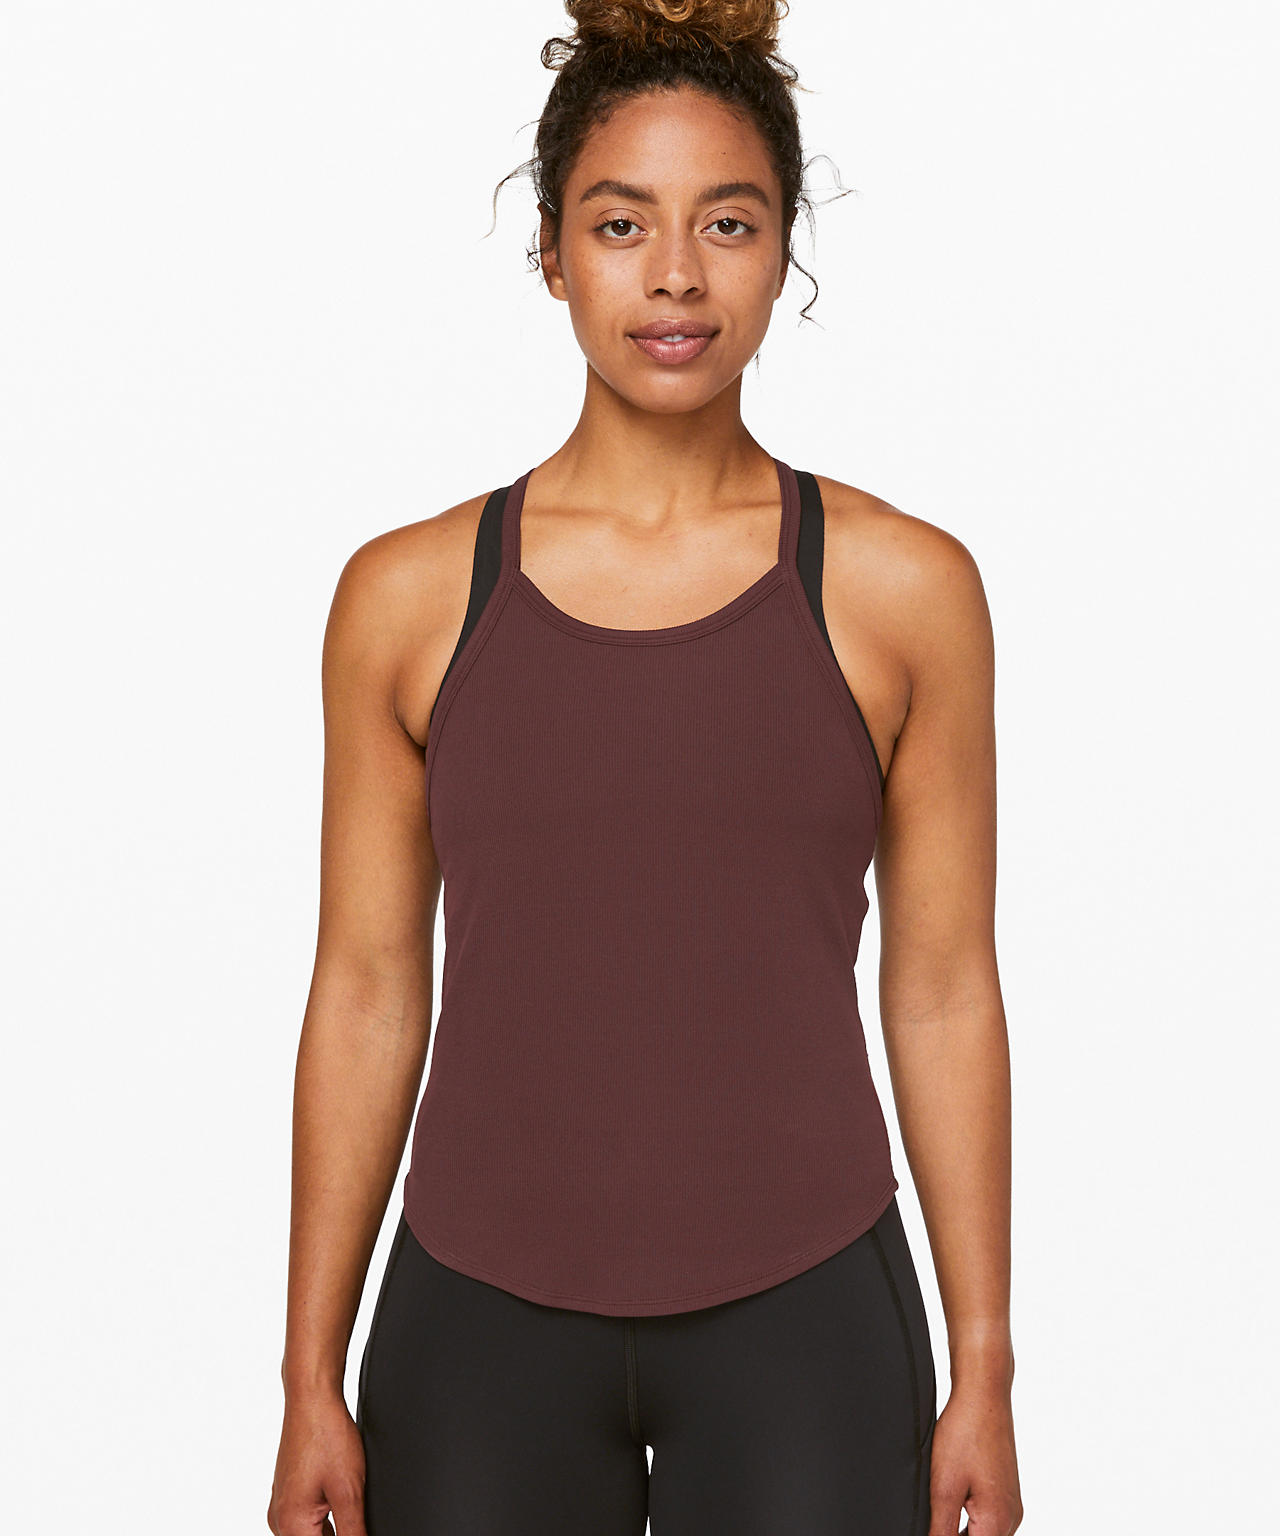 Stronger as One Ribbed Tank lululemon X Barry's